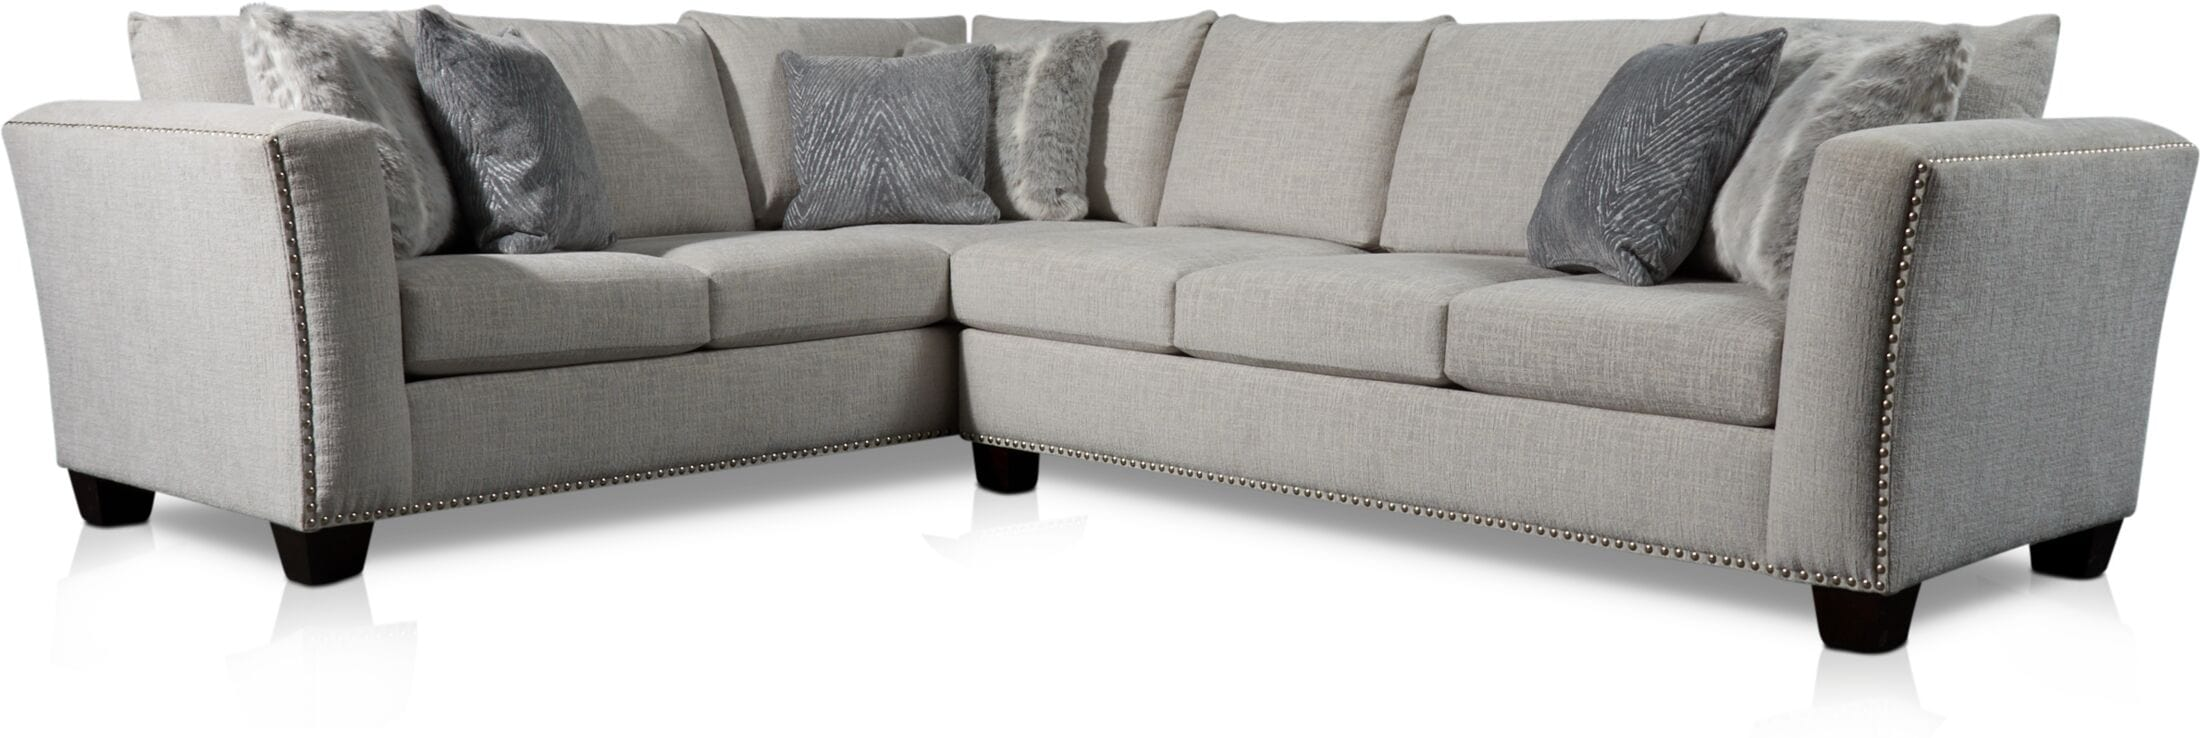 cora 2 piece sectional